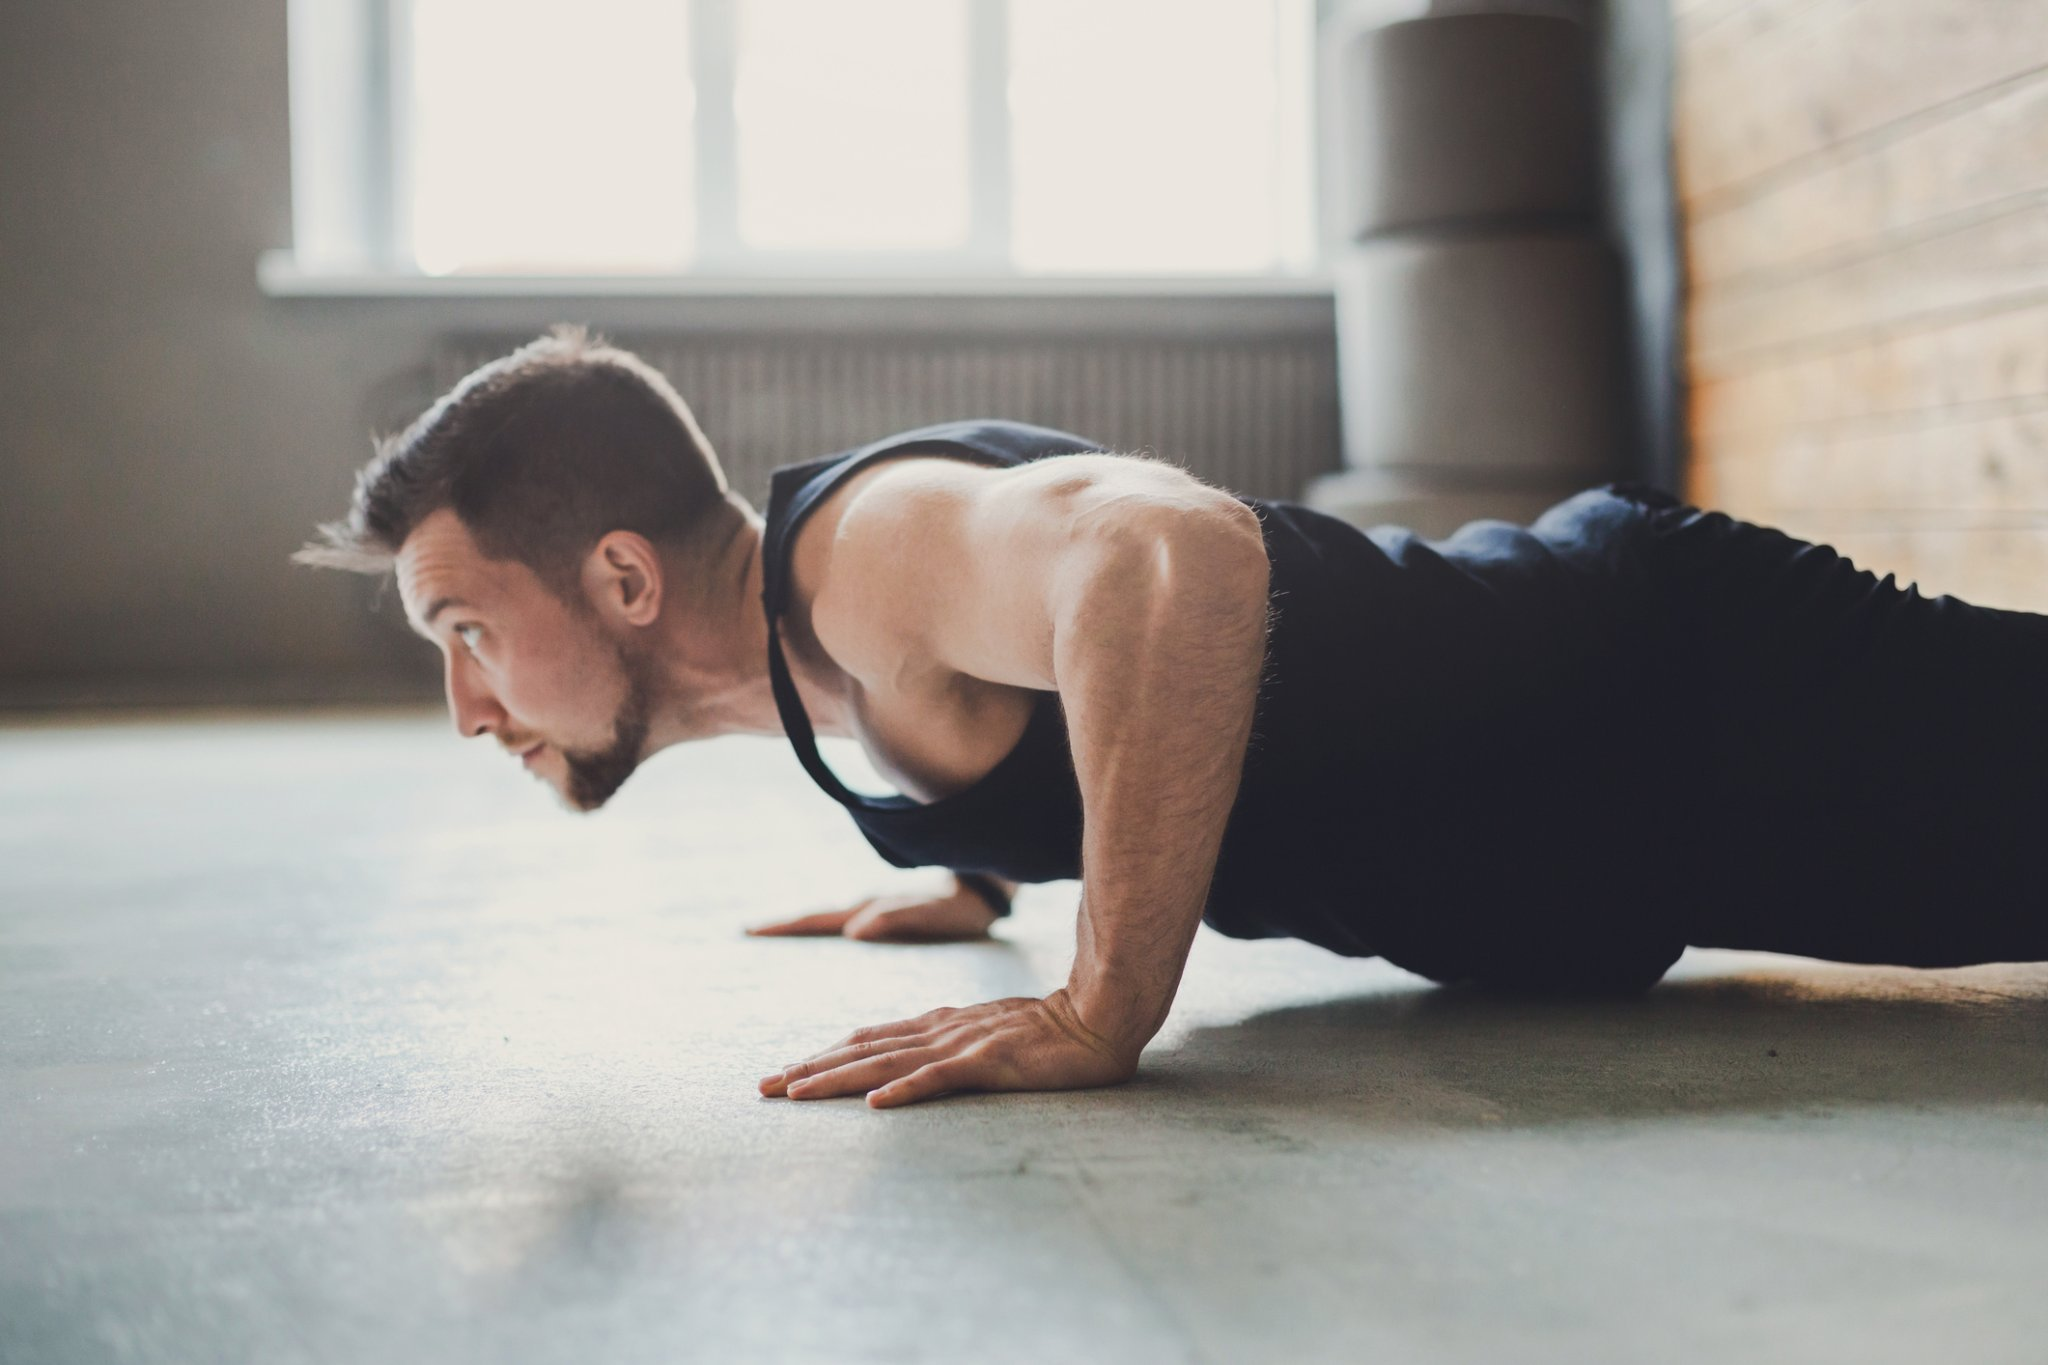 The best bodyweight exercises you can do anywhere and burn tons of fat